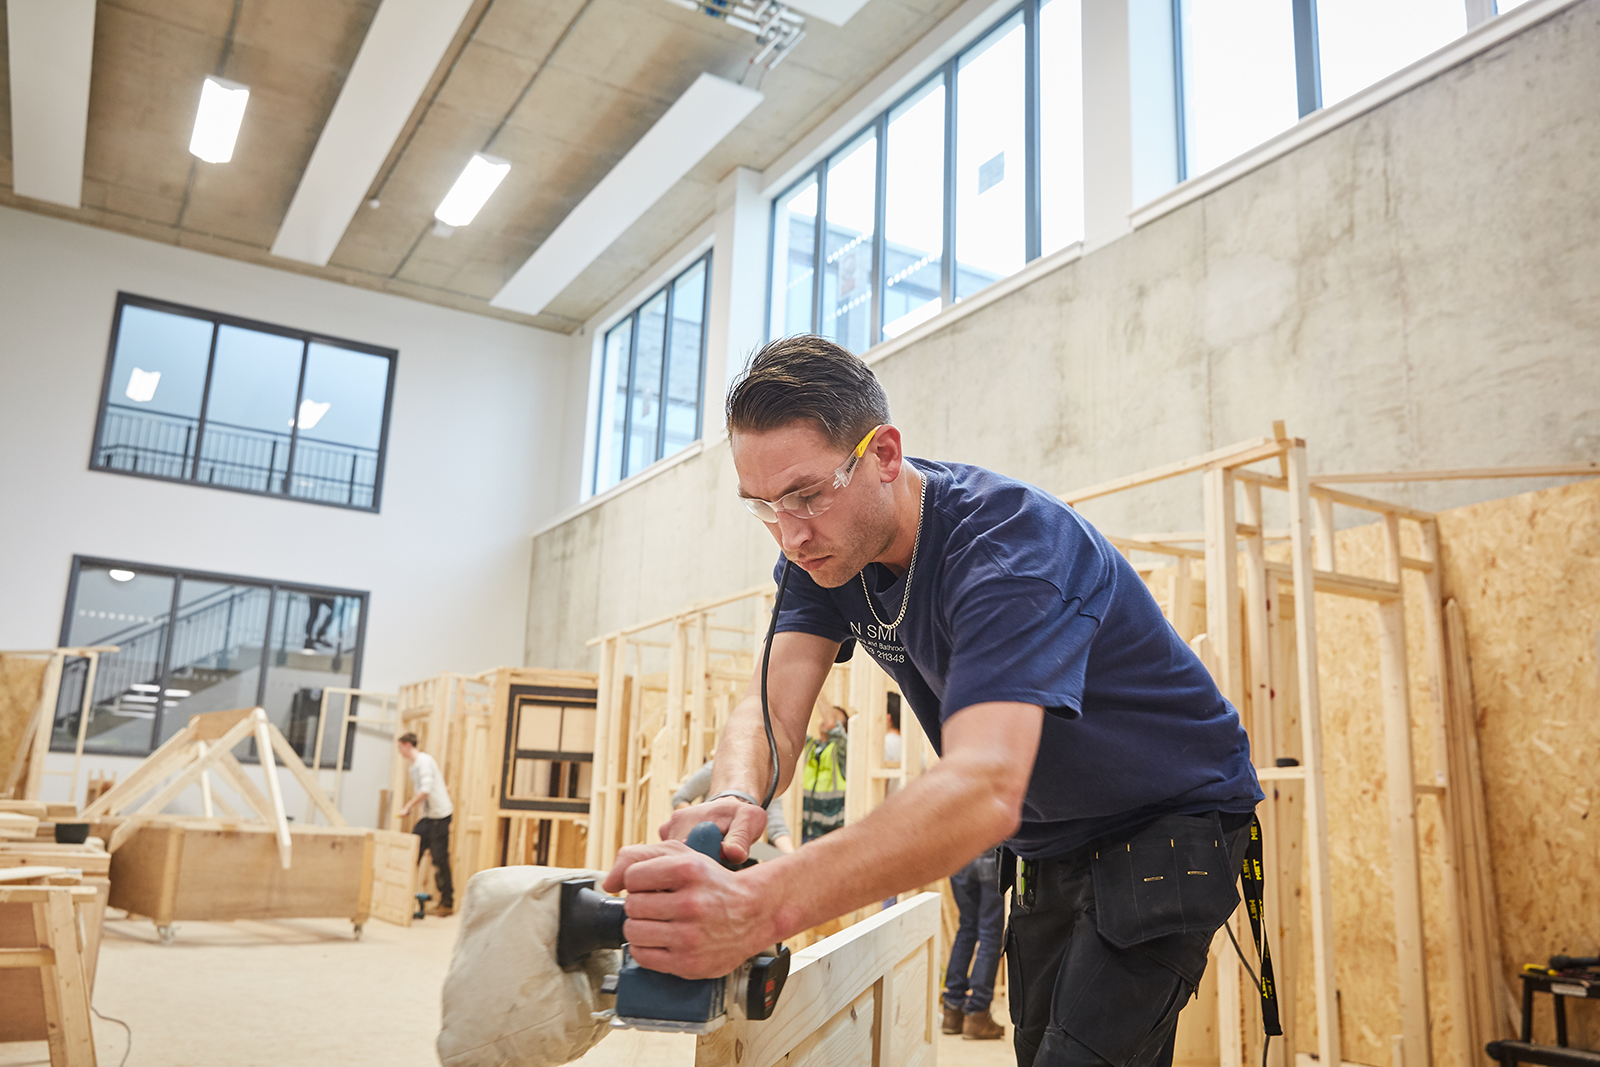 Building Trades Qualification And Professional Courses At Brighton Met